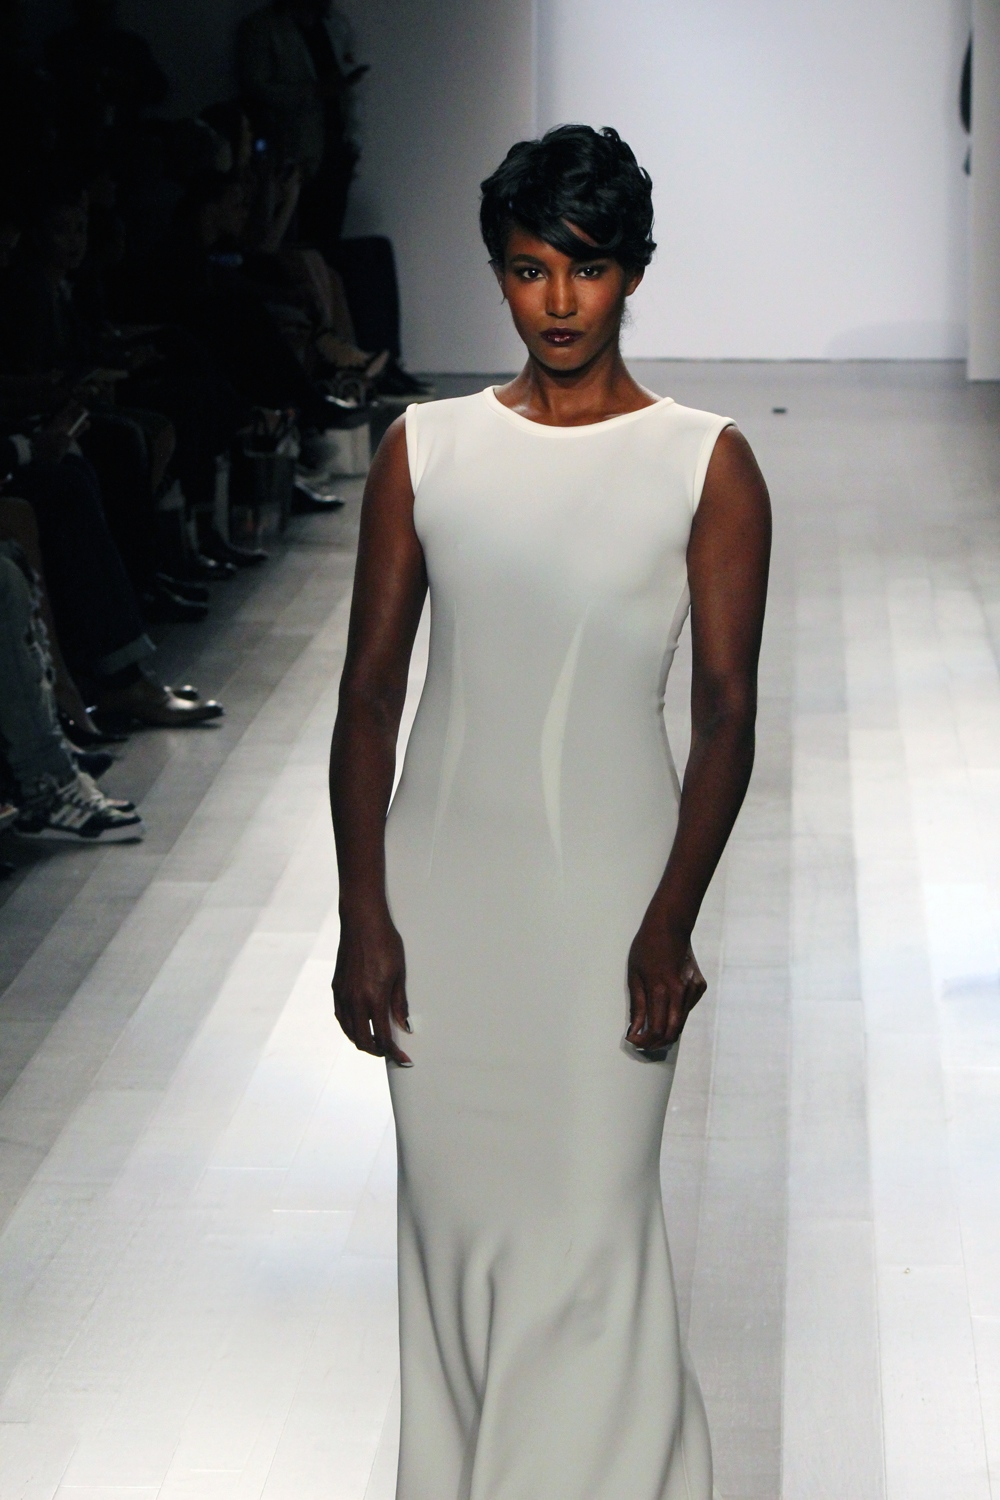 New York Fashion Week 2014/15 Cruise